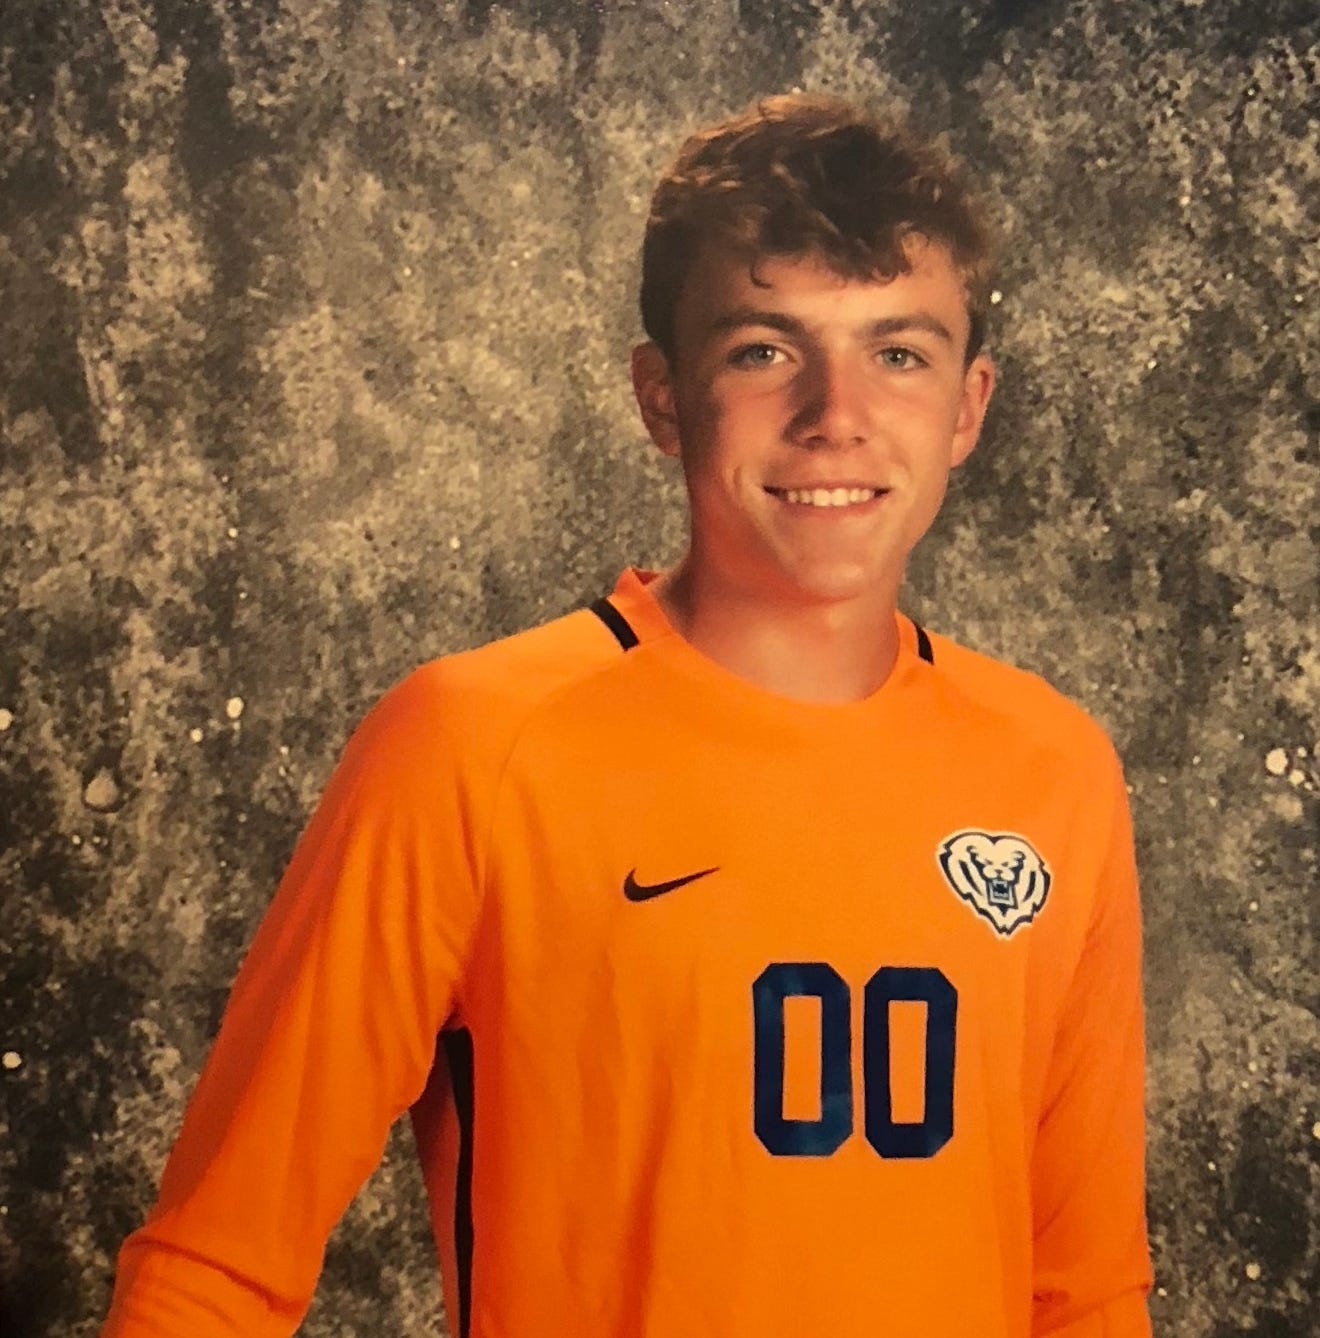 Jacob Kane, HSE boys soccer